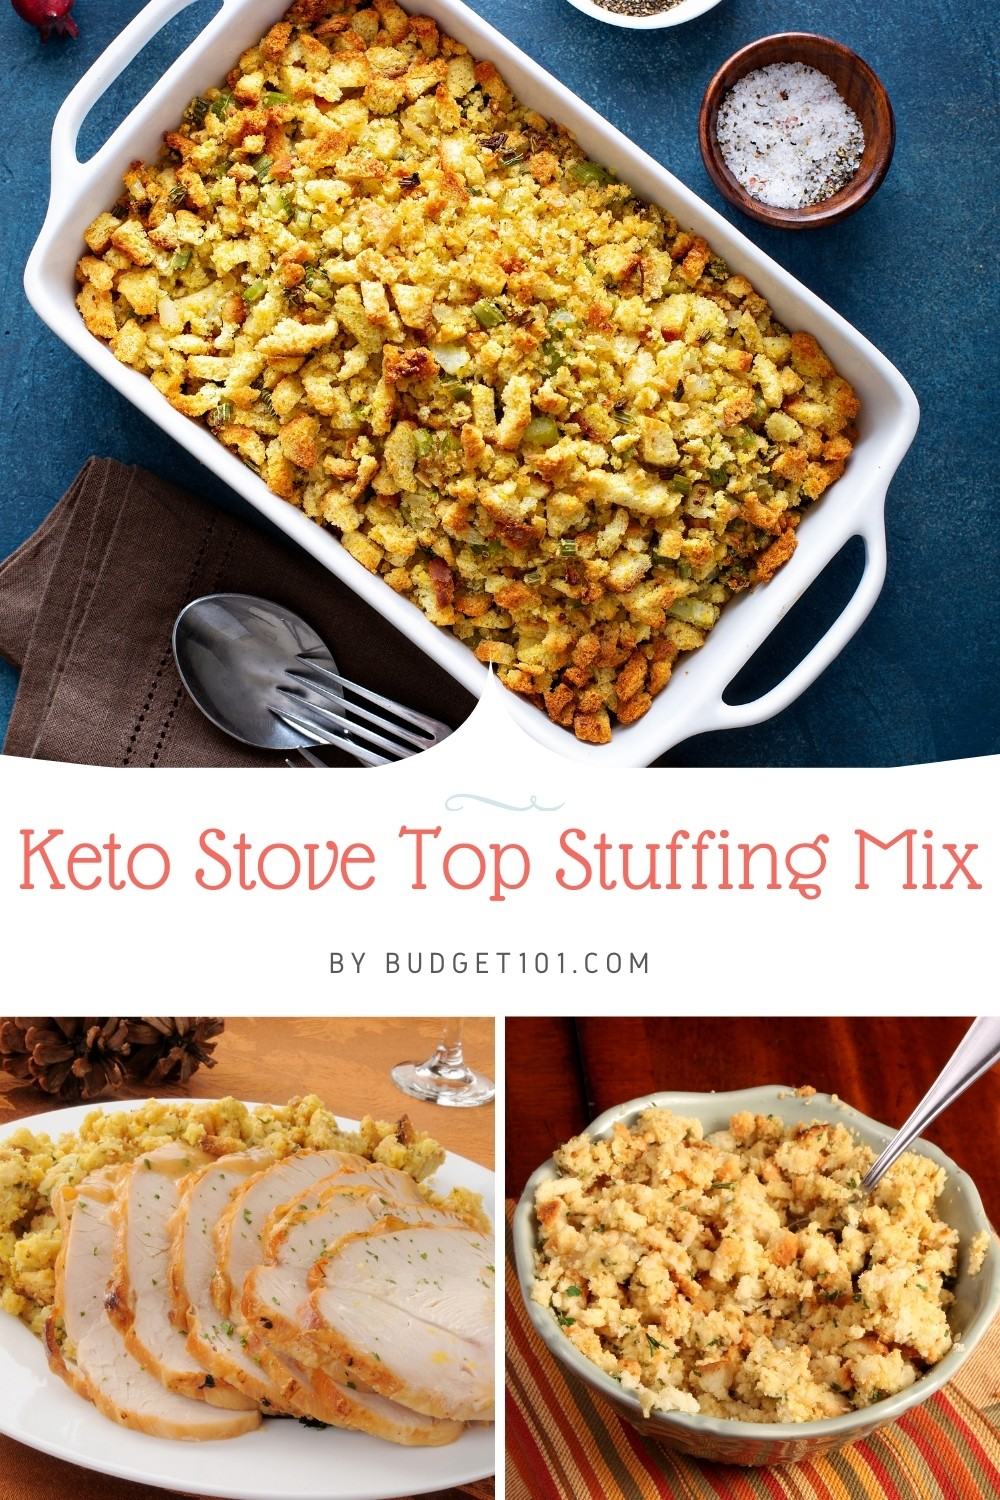 Recreate the flavor of your favorite Stovetop Stuffing with this From scratch keto-fied Copycat Stove Top Stuffing mix. #Budget101 #Keto #Ketorecipes #Thanksgiving